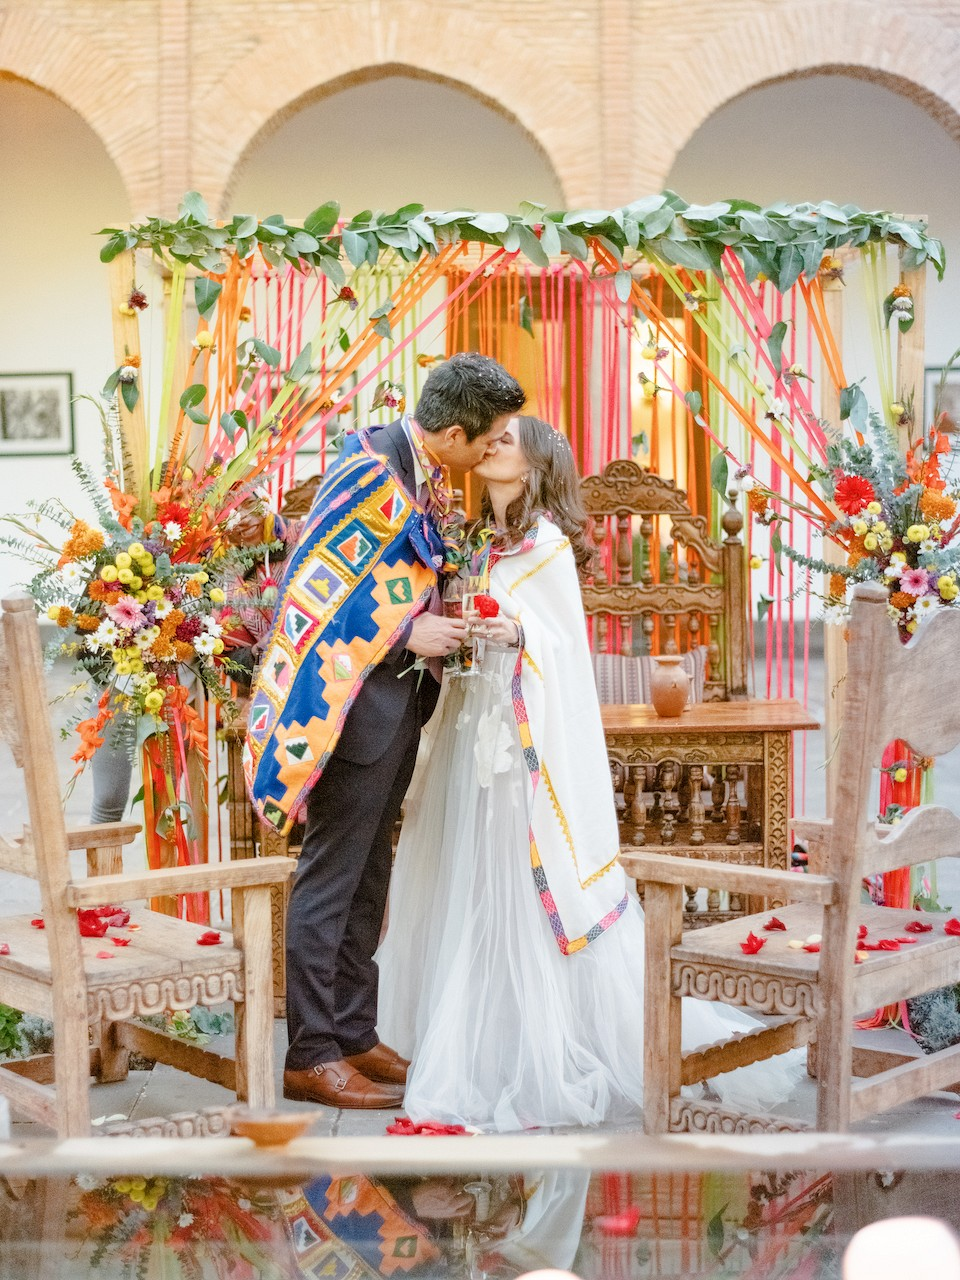 How to Get Married in Peru